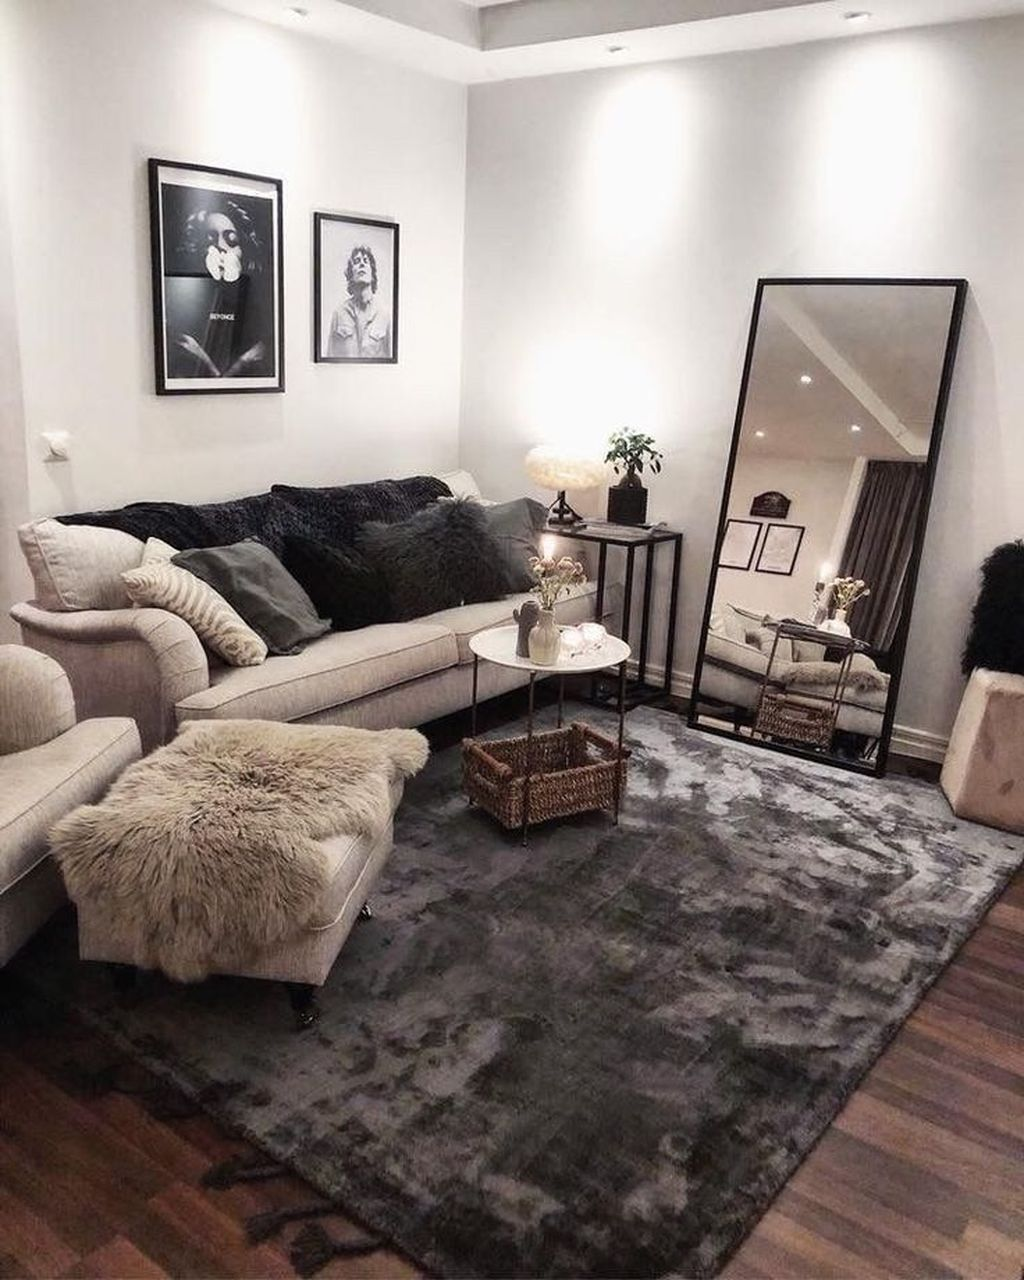 20 Outstanding Apartment Decoration Ideas On A Budget Small Living Room Decor Farm House Living Room Living Room Decor Apartment